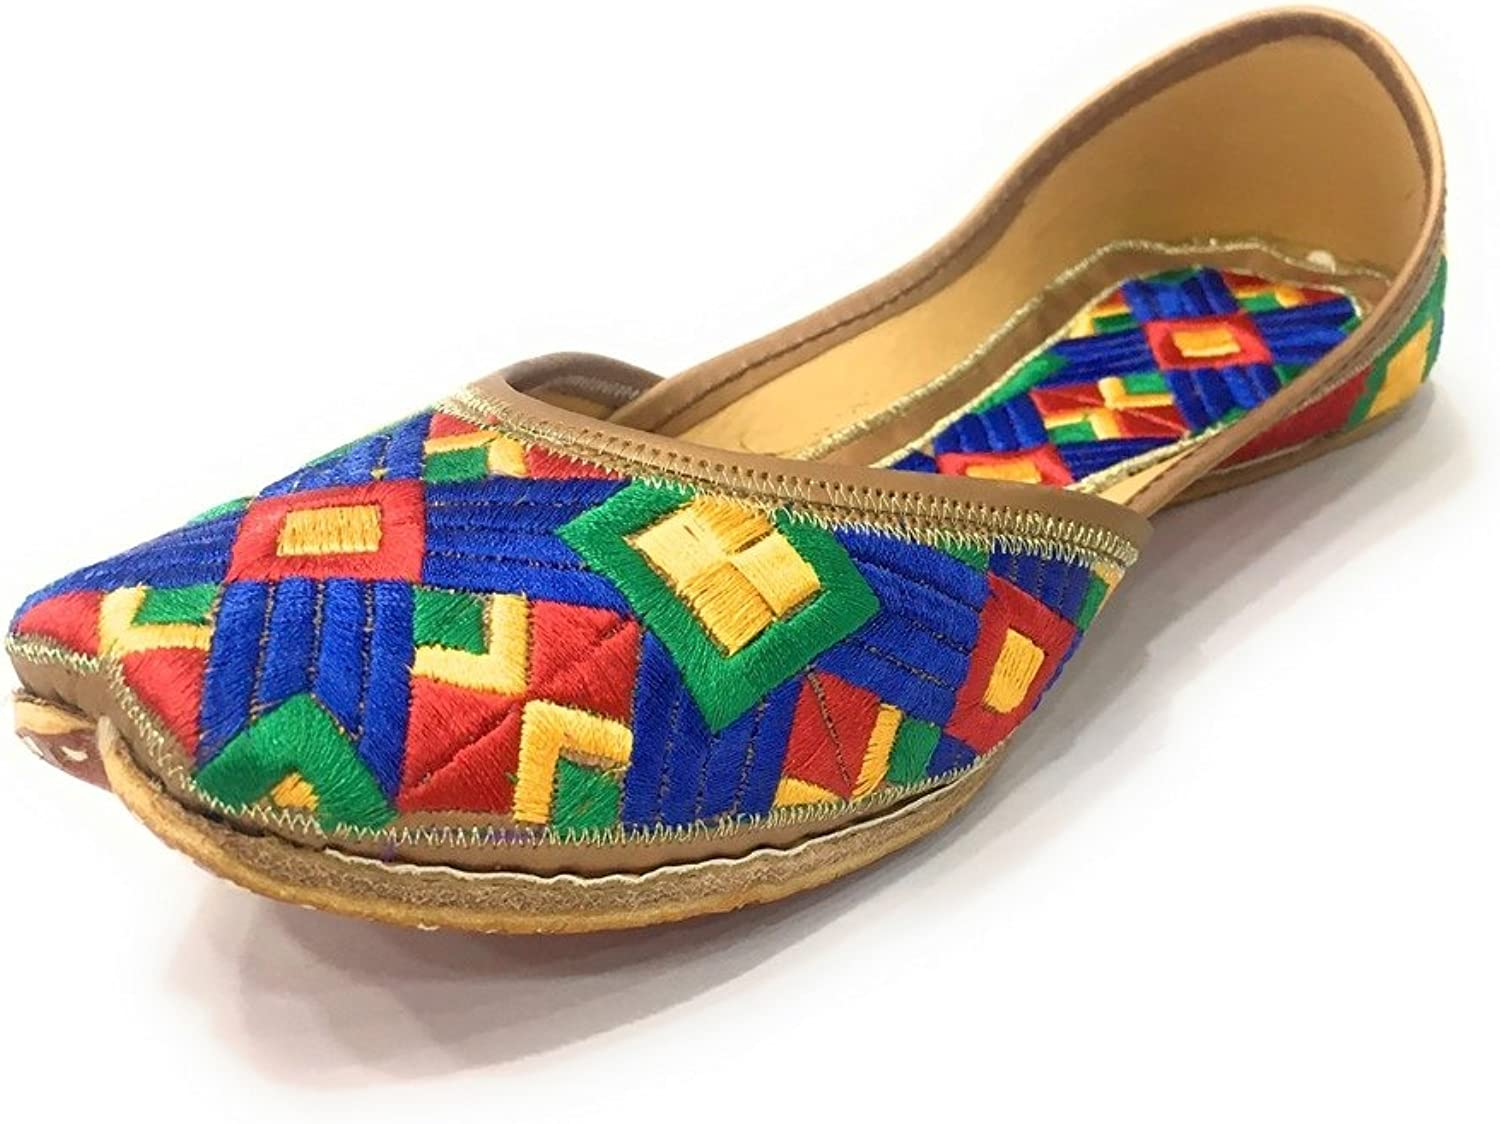 Step n Style Womens Indian Traditional Khussa shoes Jutti Flip Flop Flat Ballet